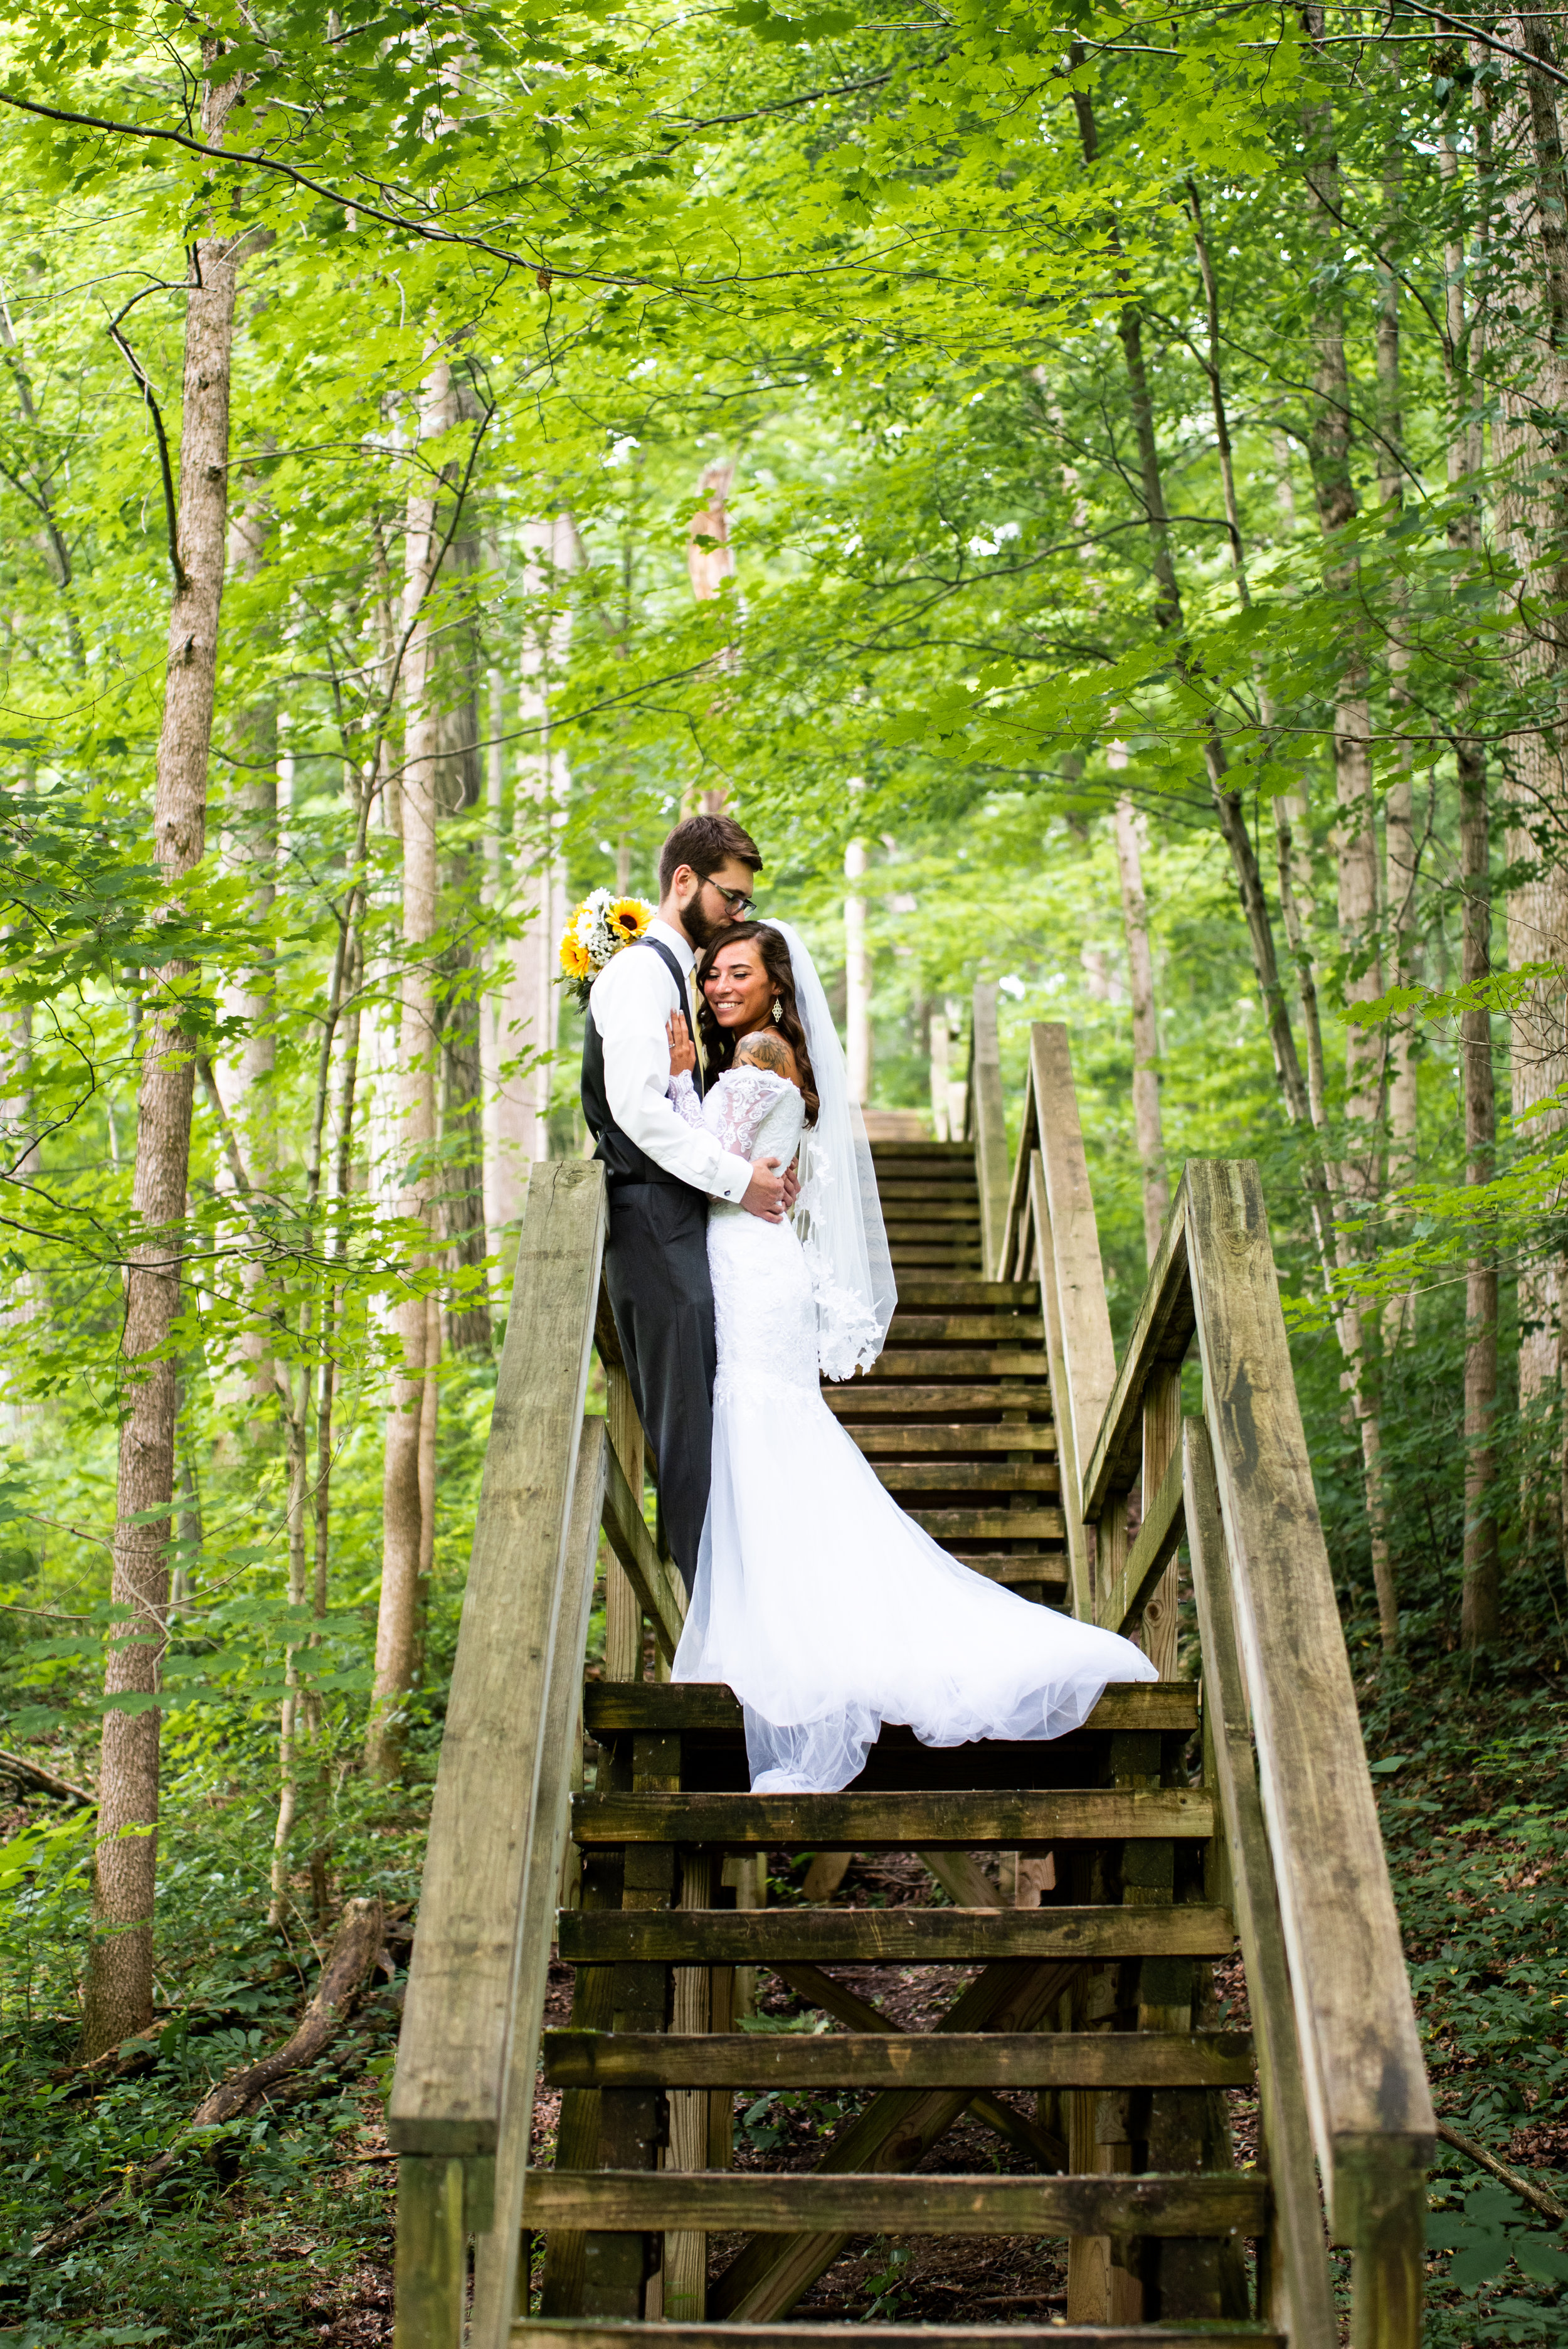 Kyla Jo Photography Muncie, Indiana Weddings Positive Reviews